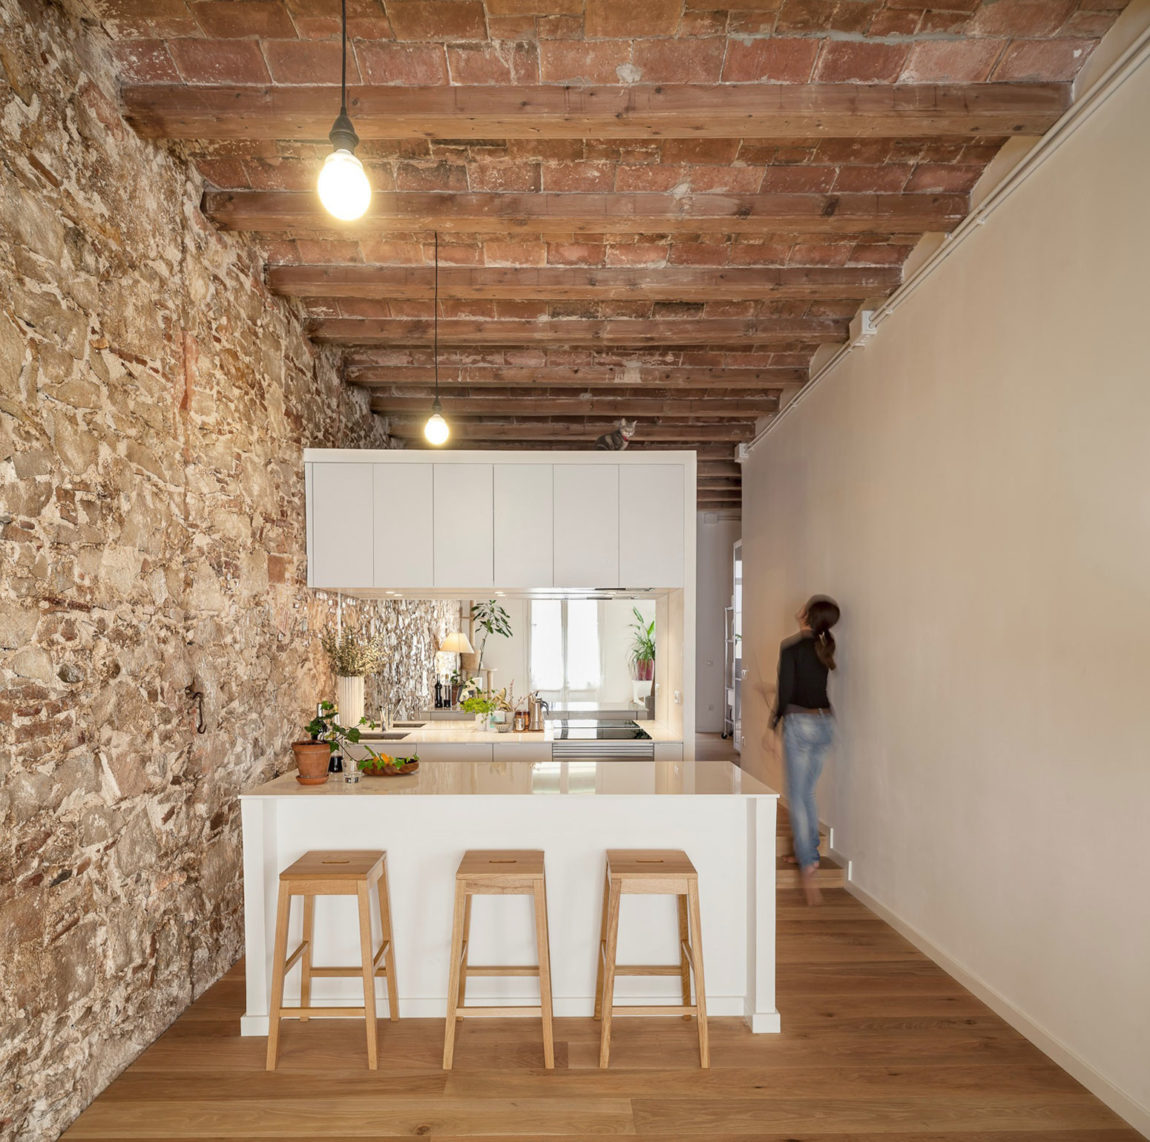 Renovation Apartment in Les Corts by Sergi Pons (4)